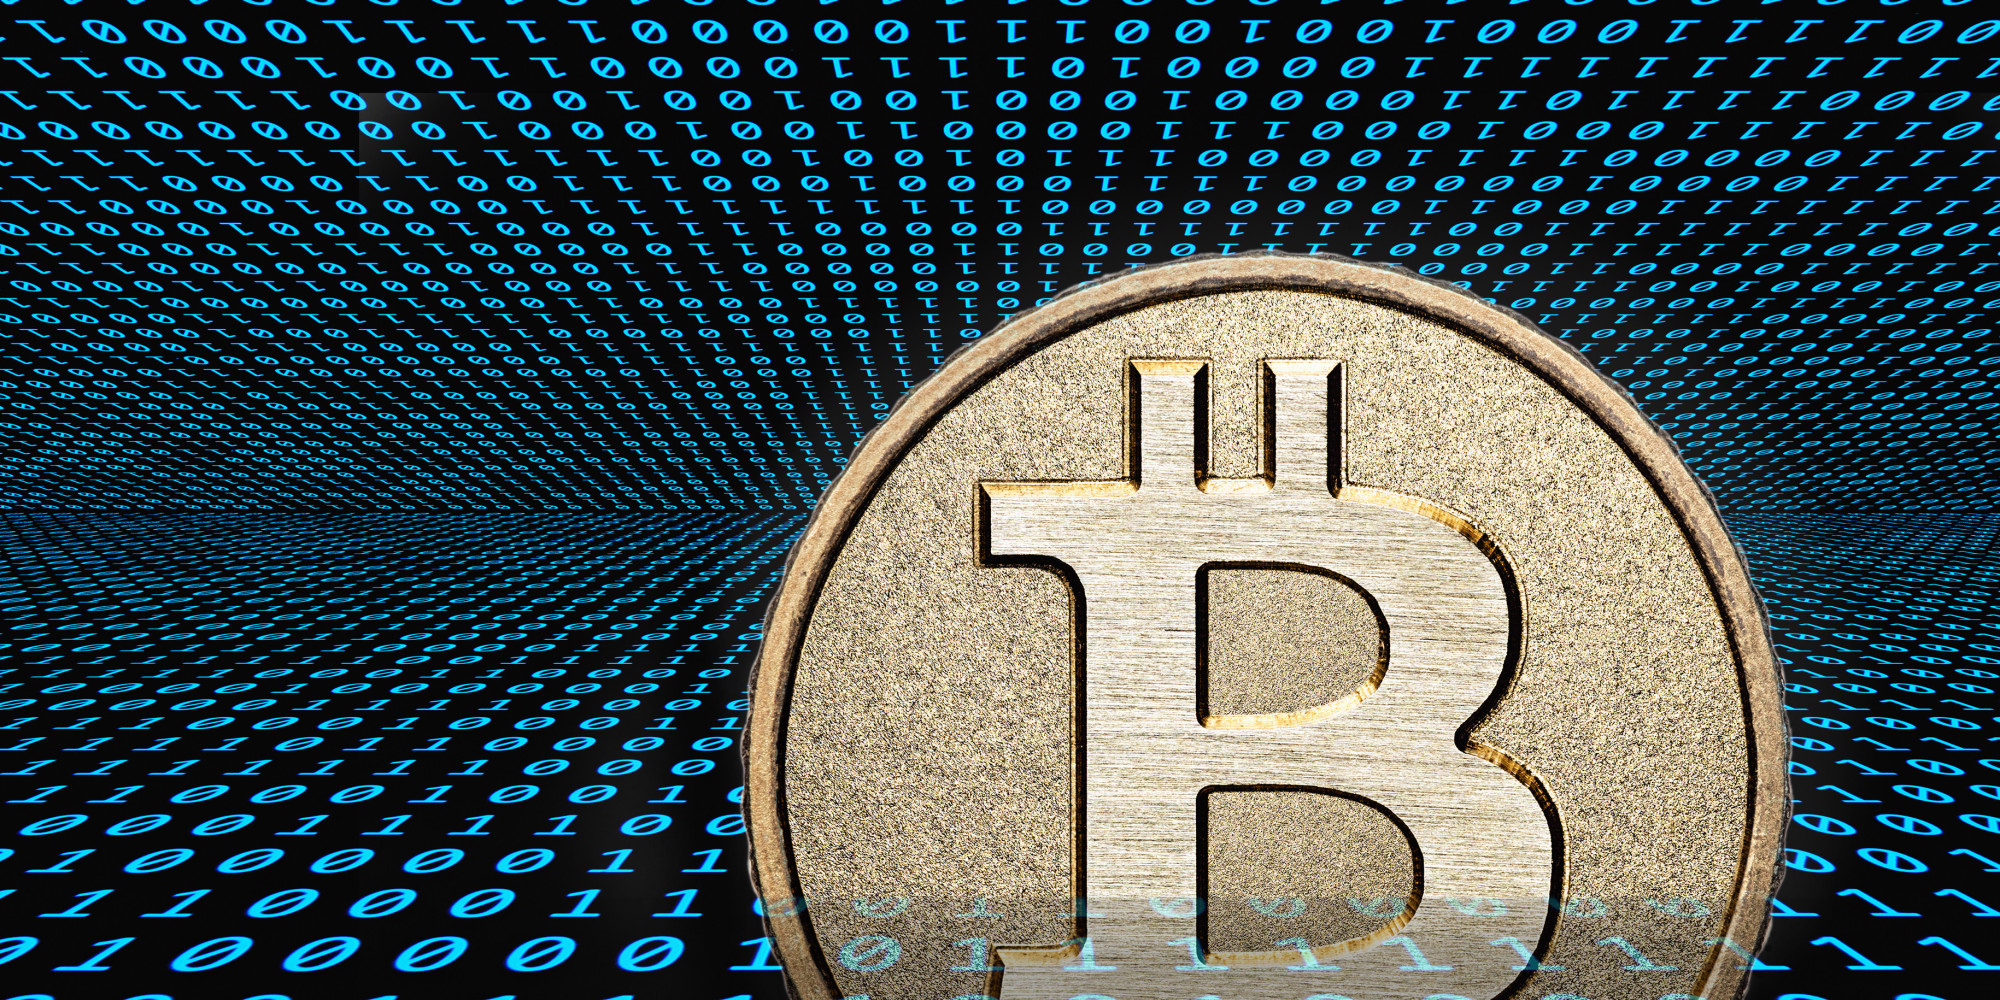 Cryptocurrency Wallpaper Hd Bitcoin Demystified Math Vs Government Huffpost